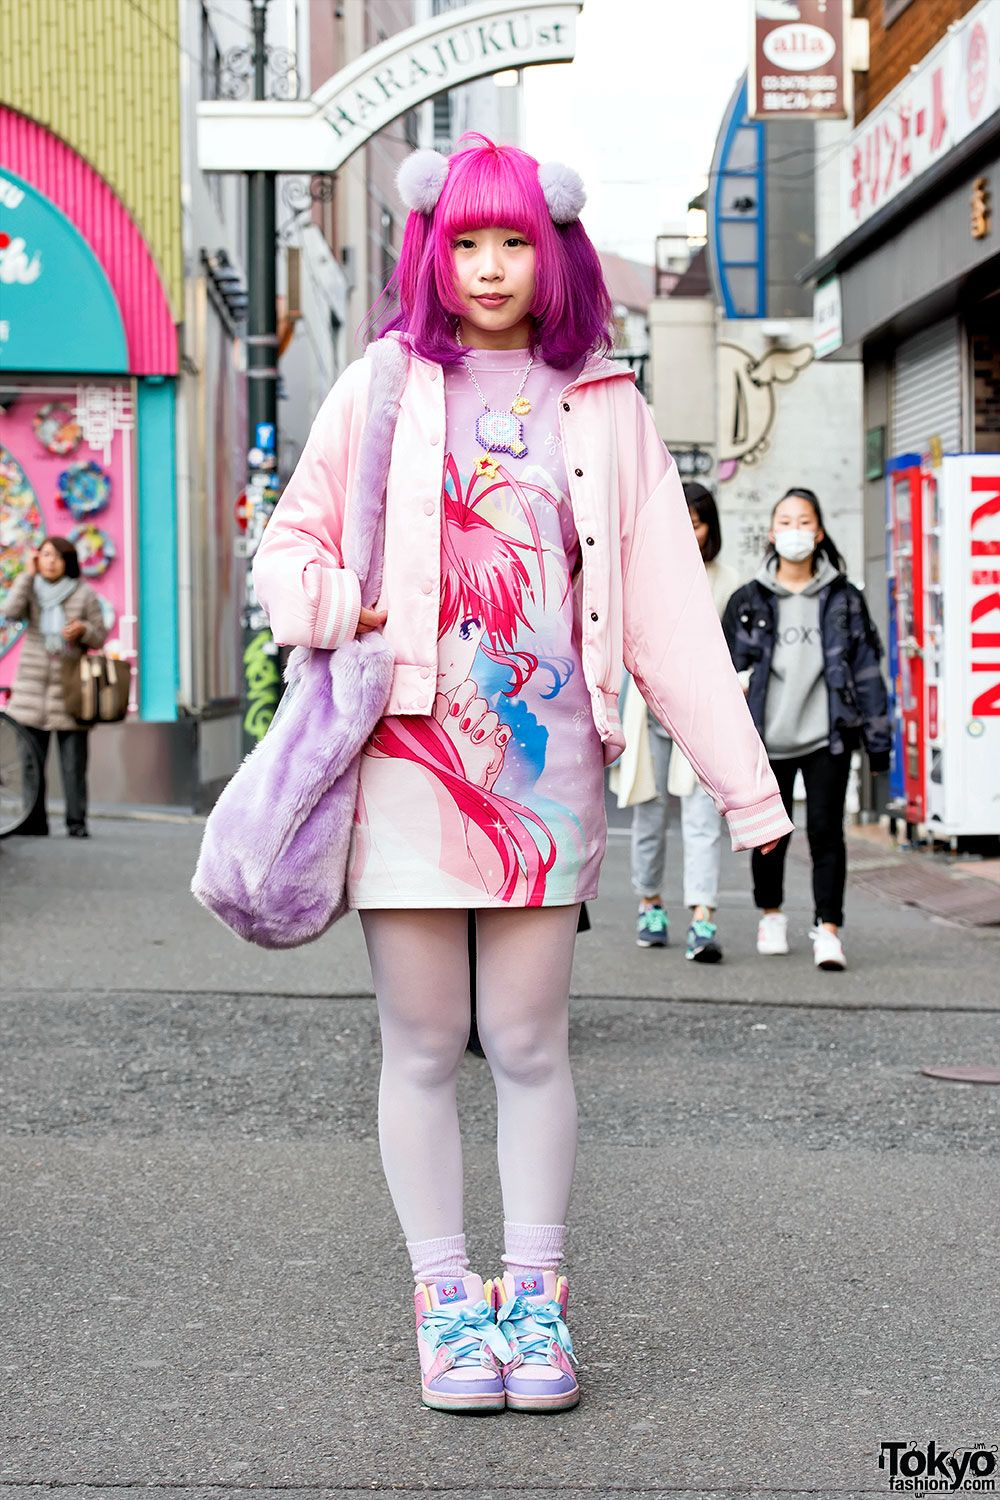 harajuku style hair pink purple hair galaxxxy papillon anime dress 5854